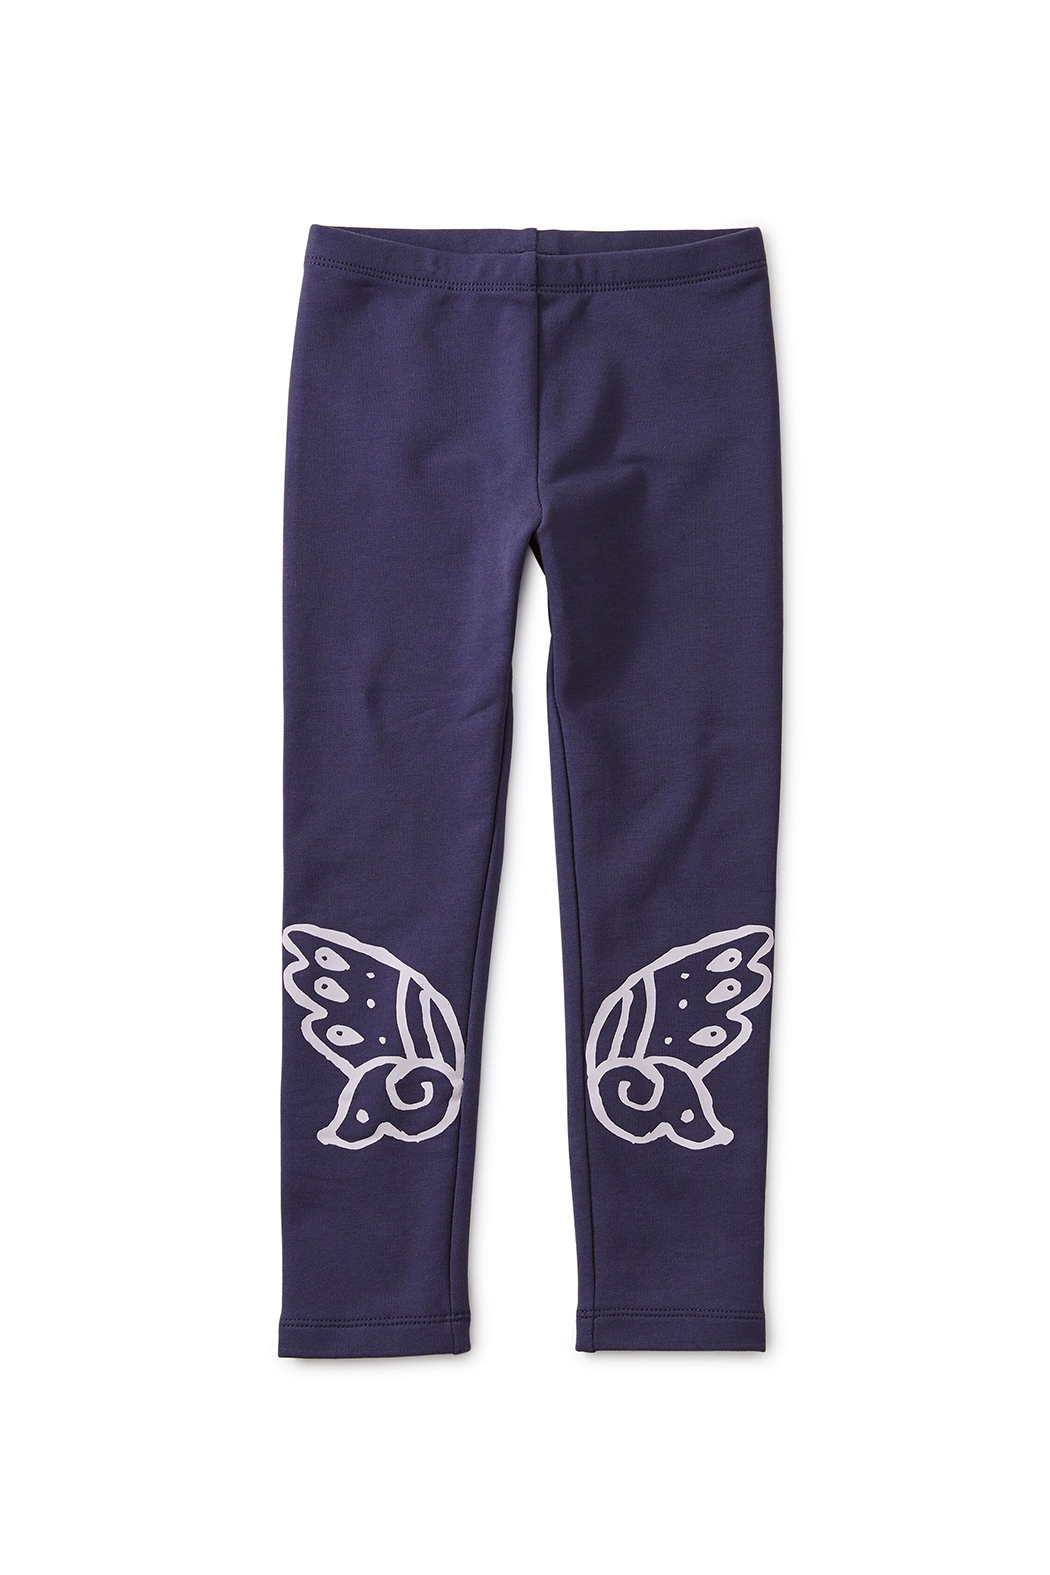 Tea Collection Winged Cozy Leggings - Front Full Image